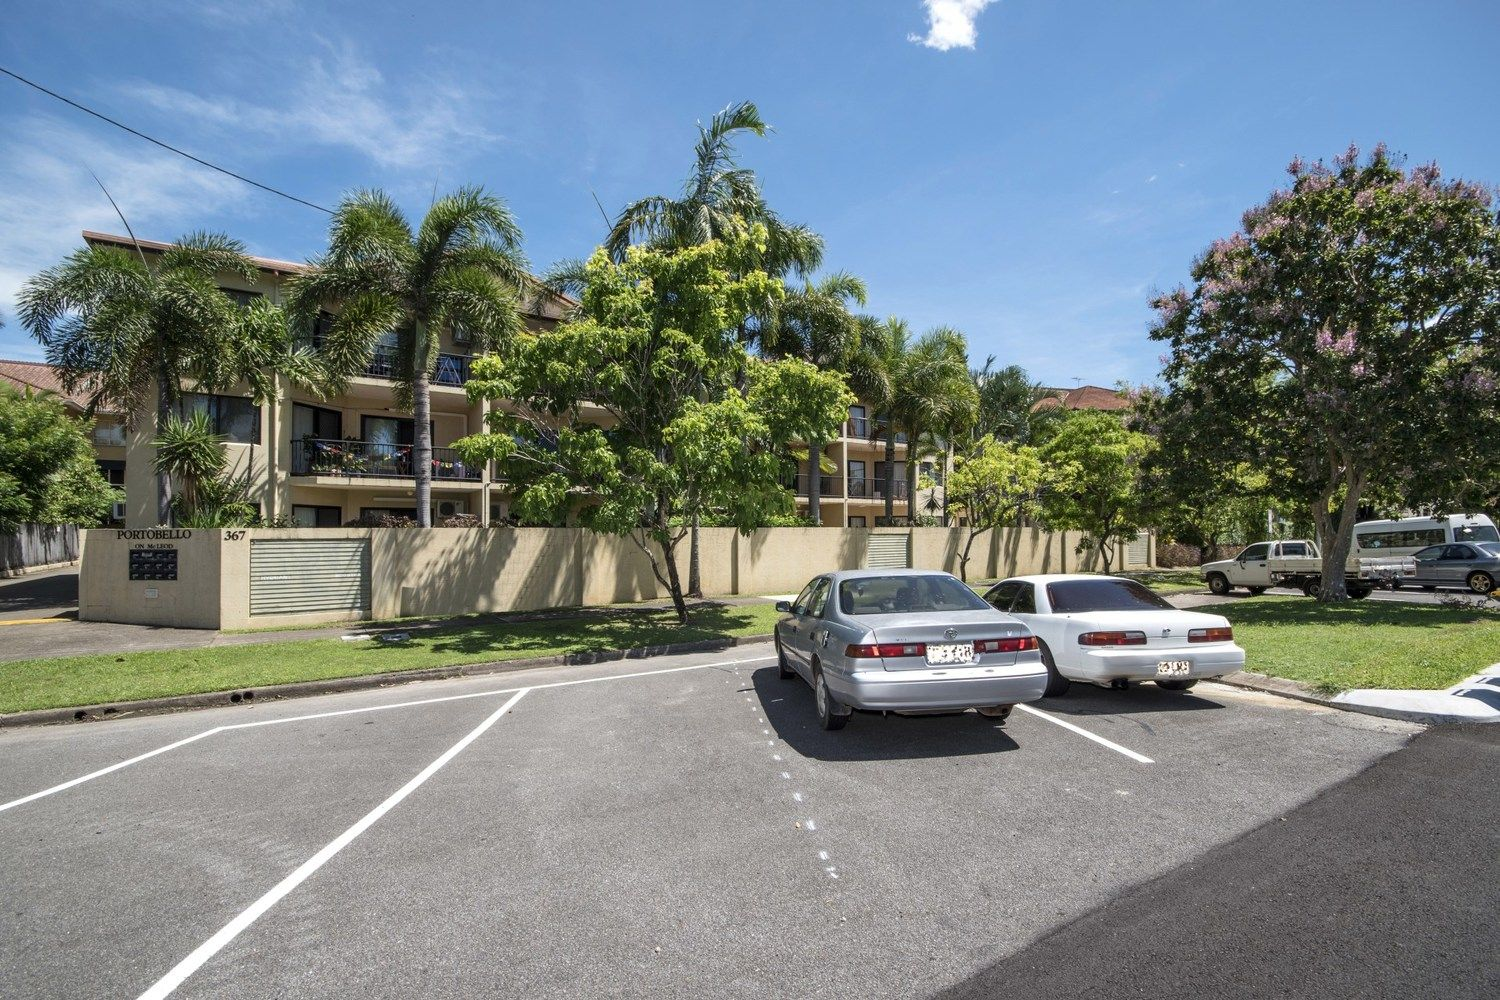 12/367 McLeod Street, Cairns North QLD 4870, Image 1